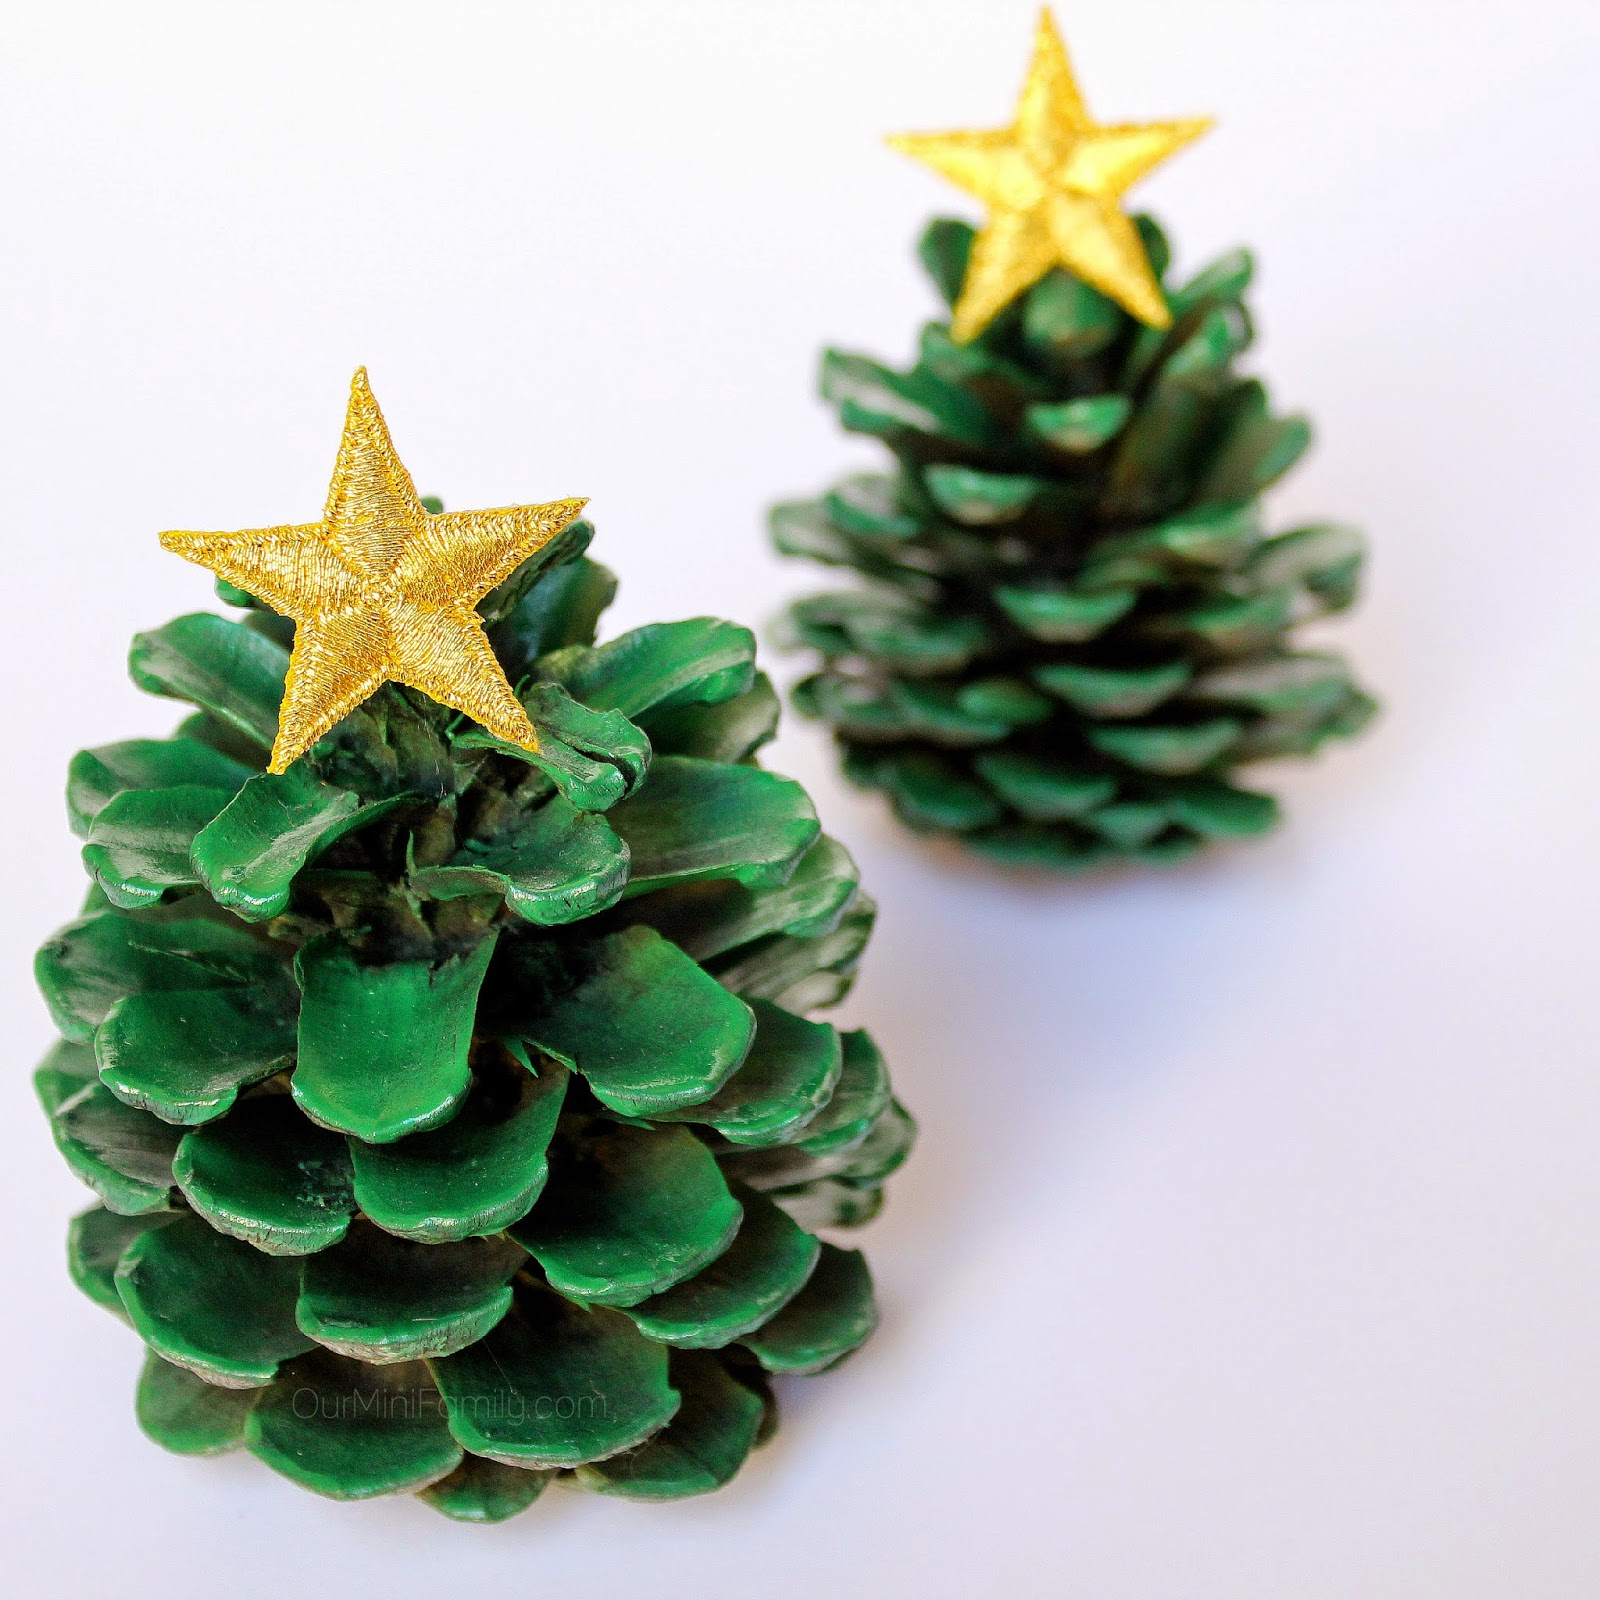 Pine Cone Christmas Tree Craft.Pinecone Christmas Trees Our Mini Family